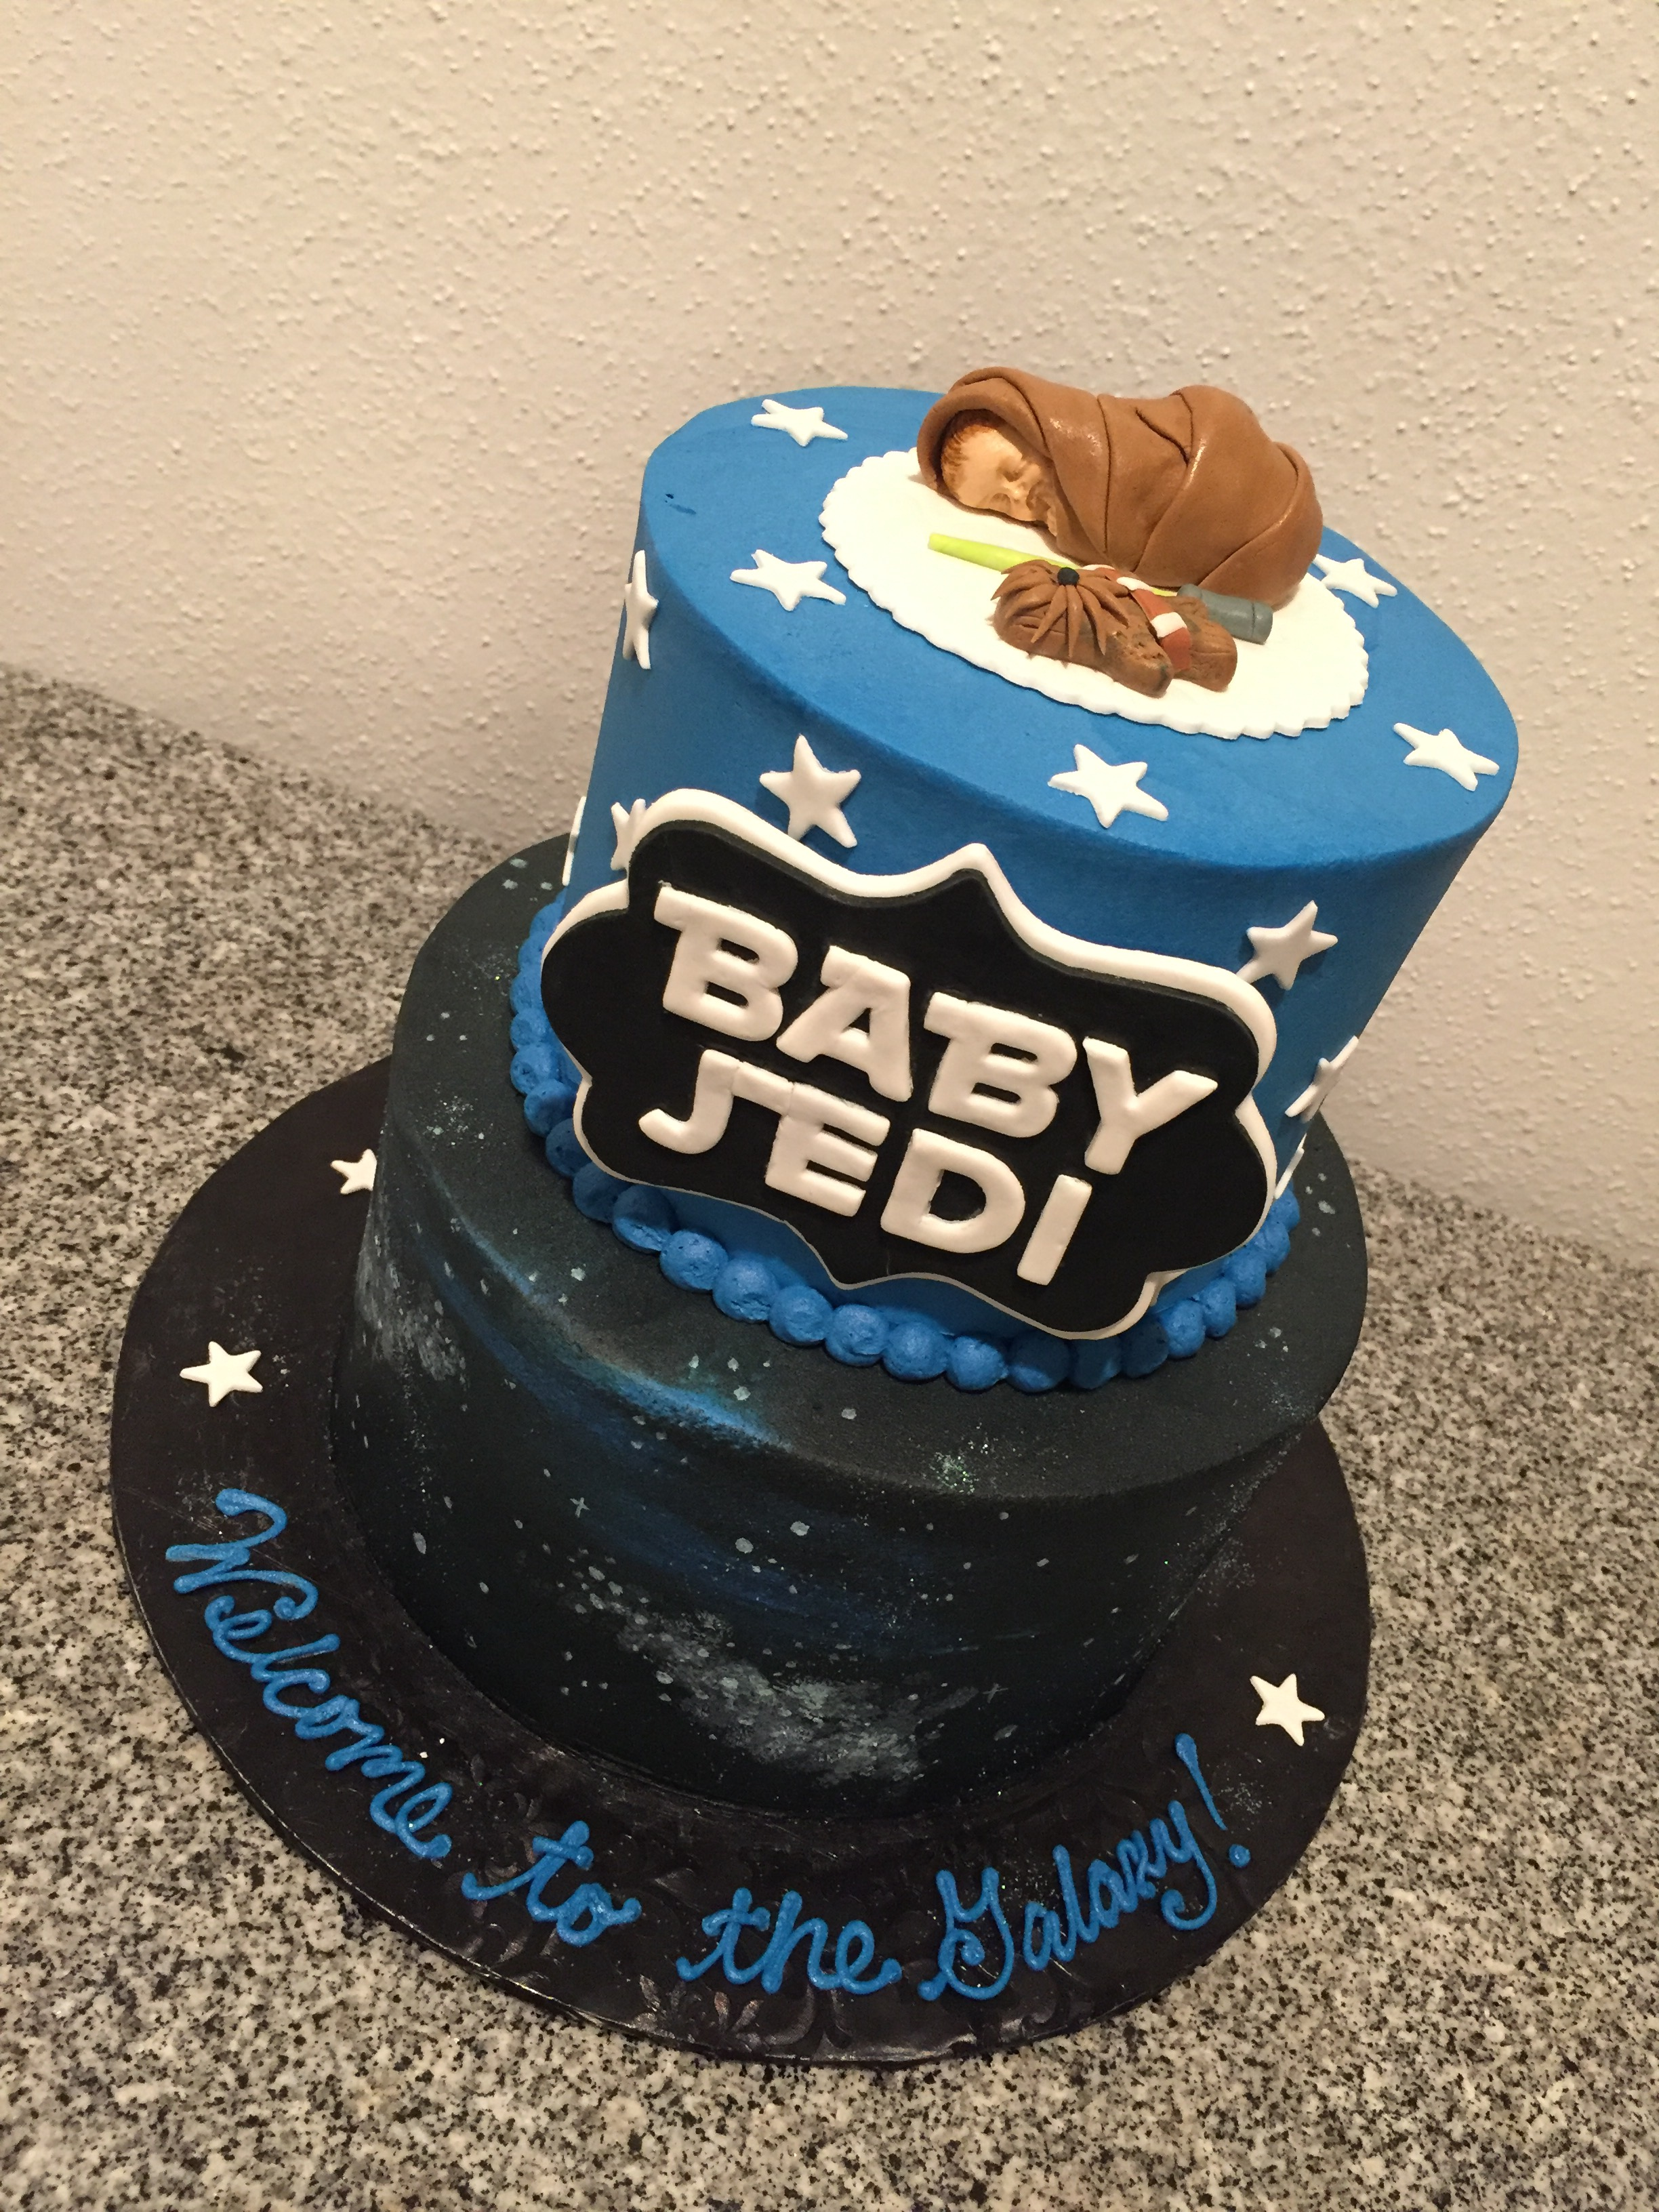 Jolly Baby Shower Star Wars Advertisements Star Wars Baby Shower Cake Main Made Custom Cakes Star Wars Baby Shower Games Star Wars Baby Shower Gifts baby shower Star Wars Baby Shower